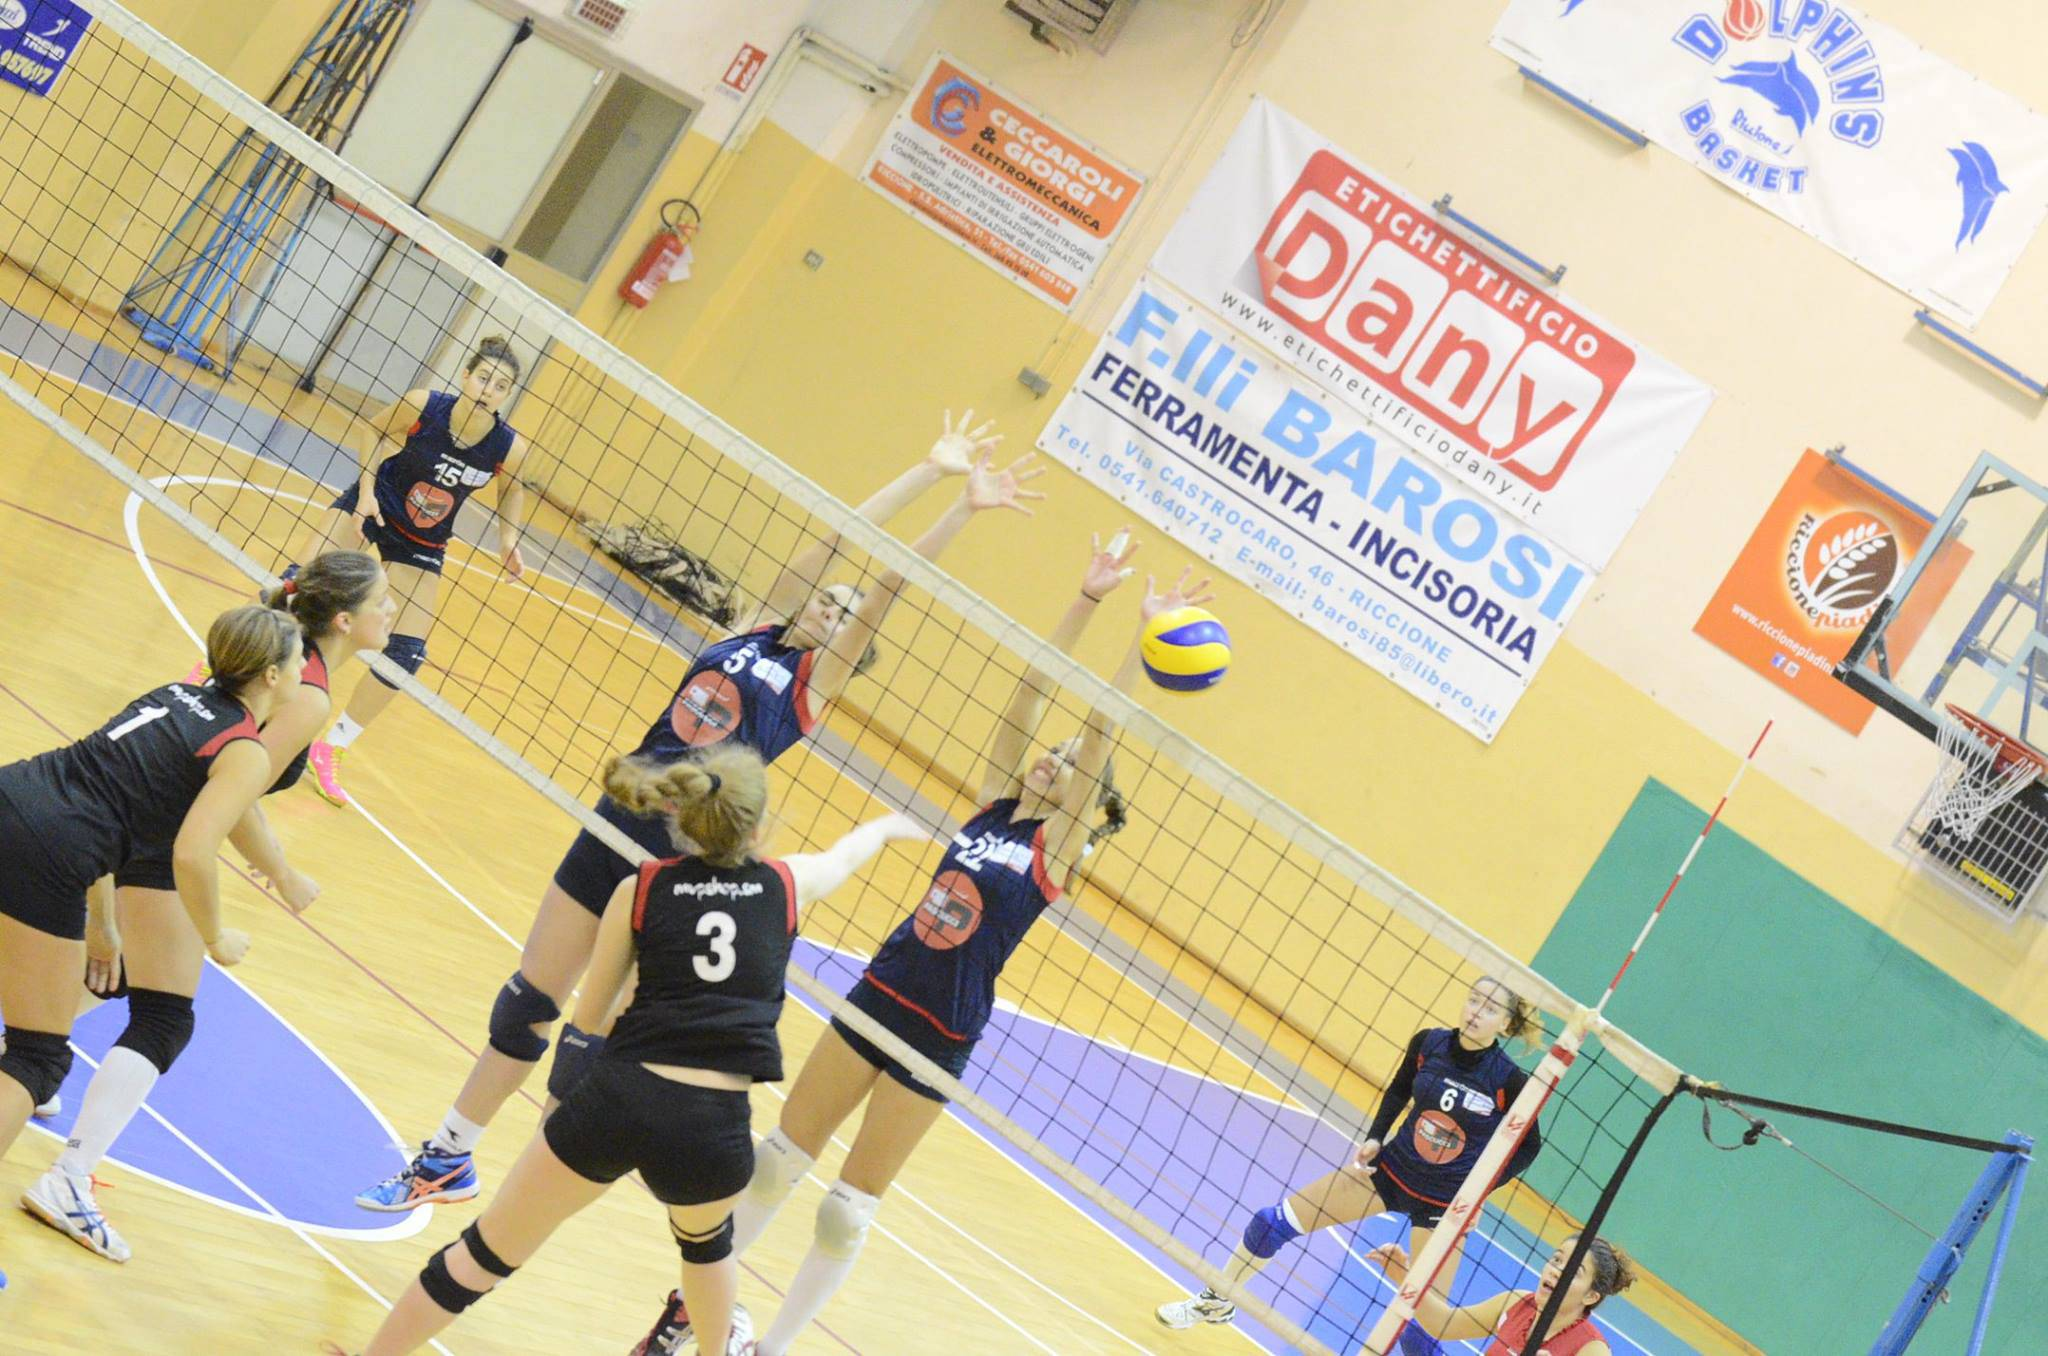 Riccione Volley-Riviera Volley Rimini 3-0